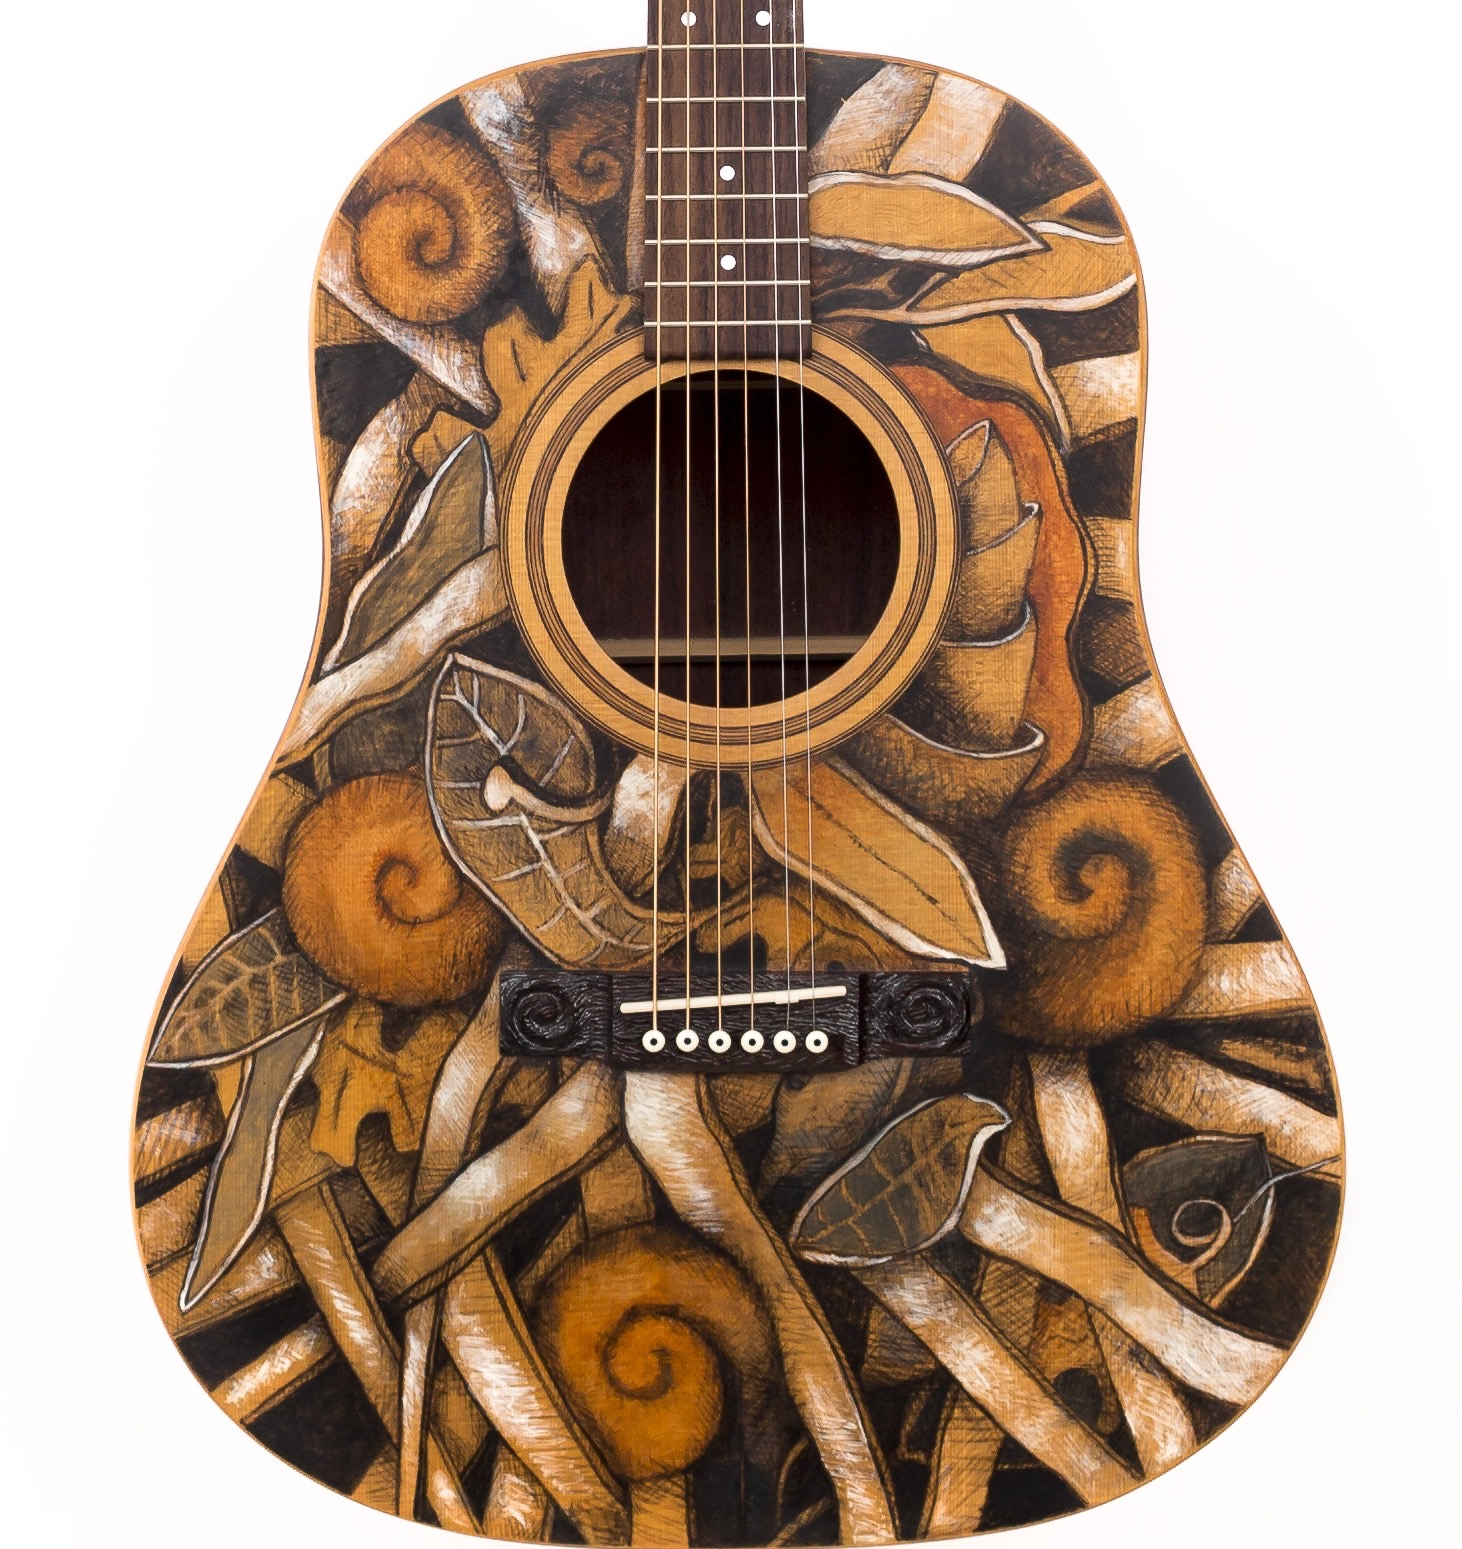 Ribbon and Spirals  motif. Artists pigment in Lacquer. Deep dreadnaught sized guitar, custom made by Peter Cree. Paduak sides and back, sitka spruce top. 1250.00